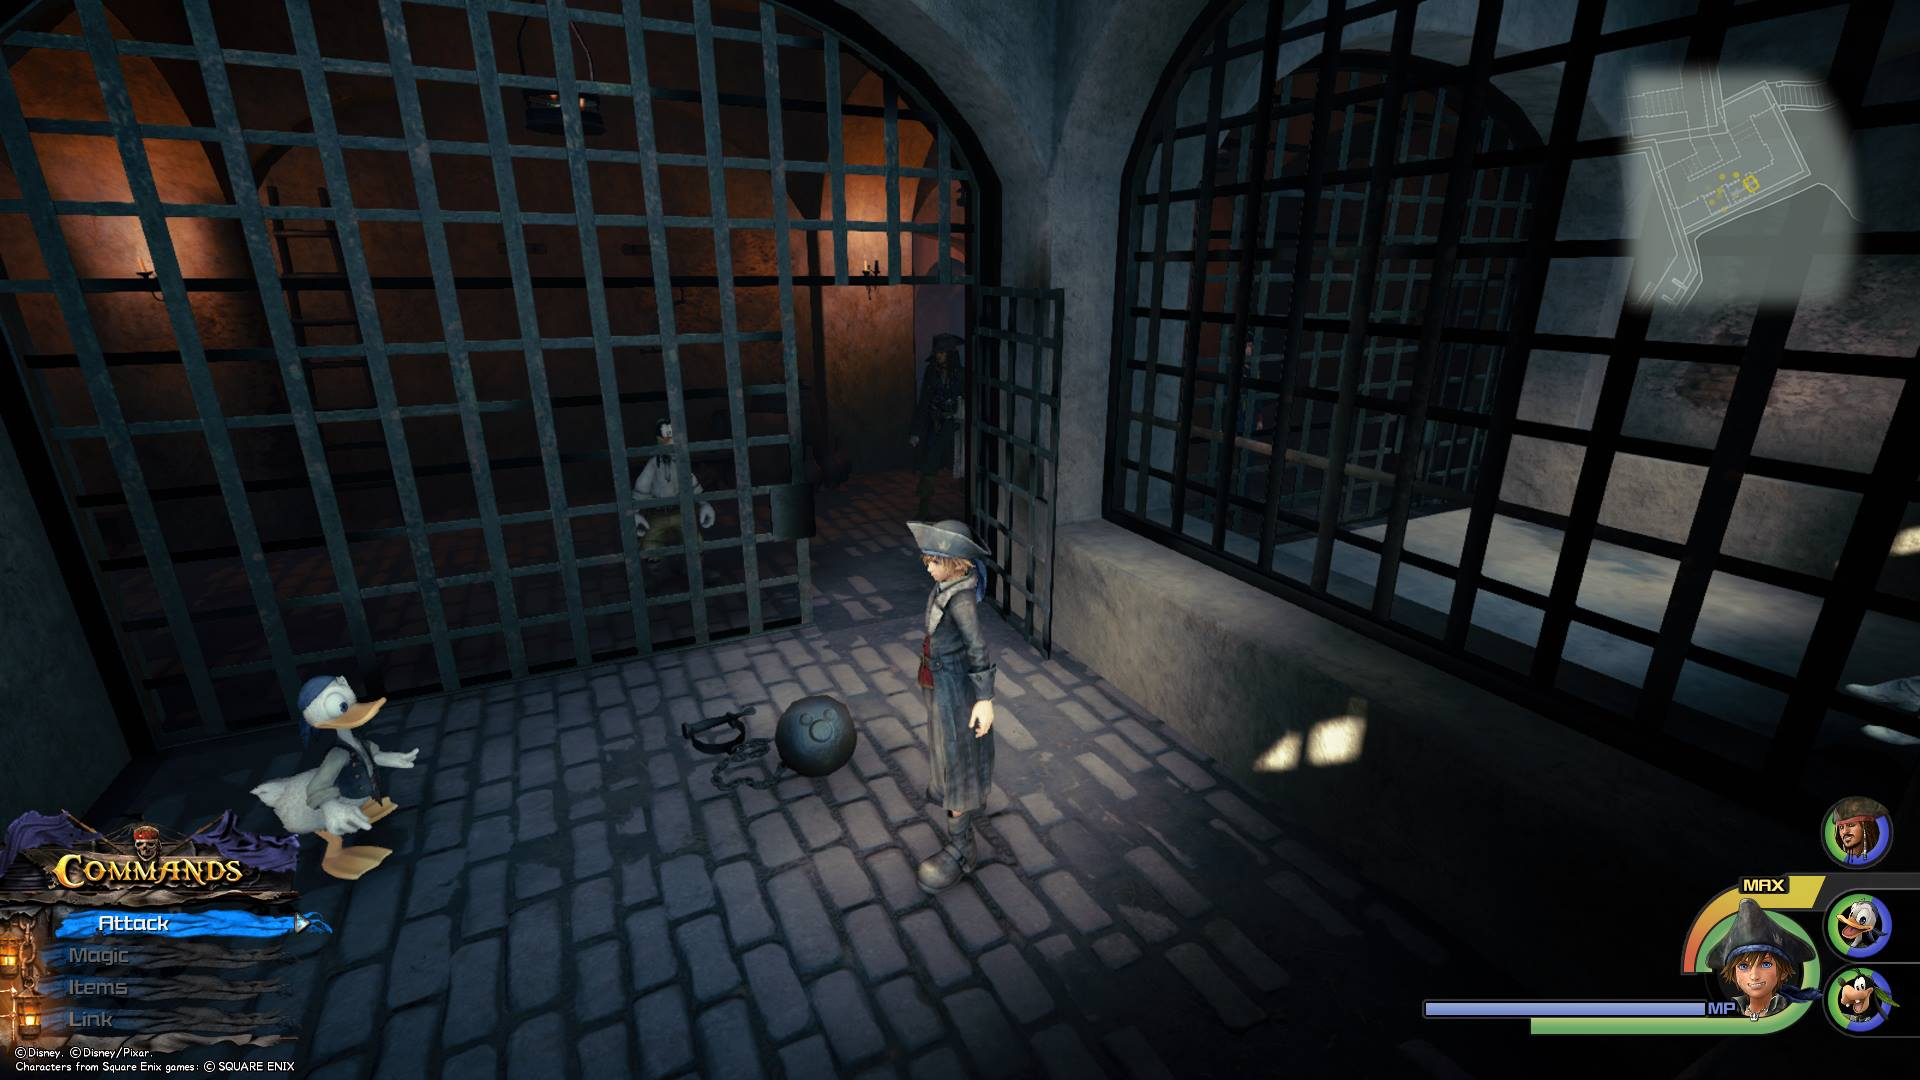 Enter the Fort and head down to the prison area to find the sixth Lucky Emblem on the side of a ball and chain.